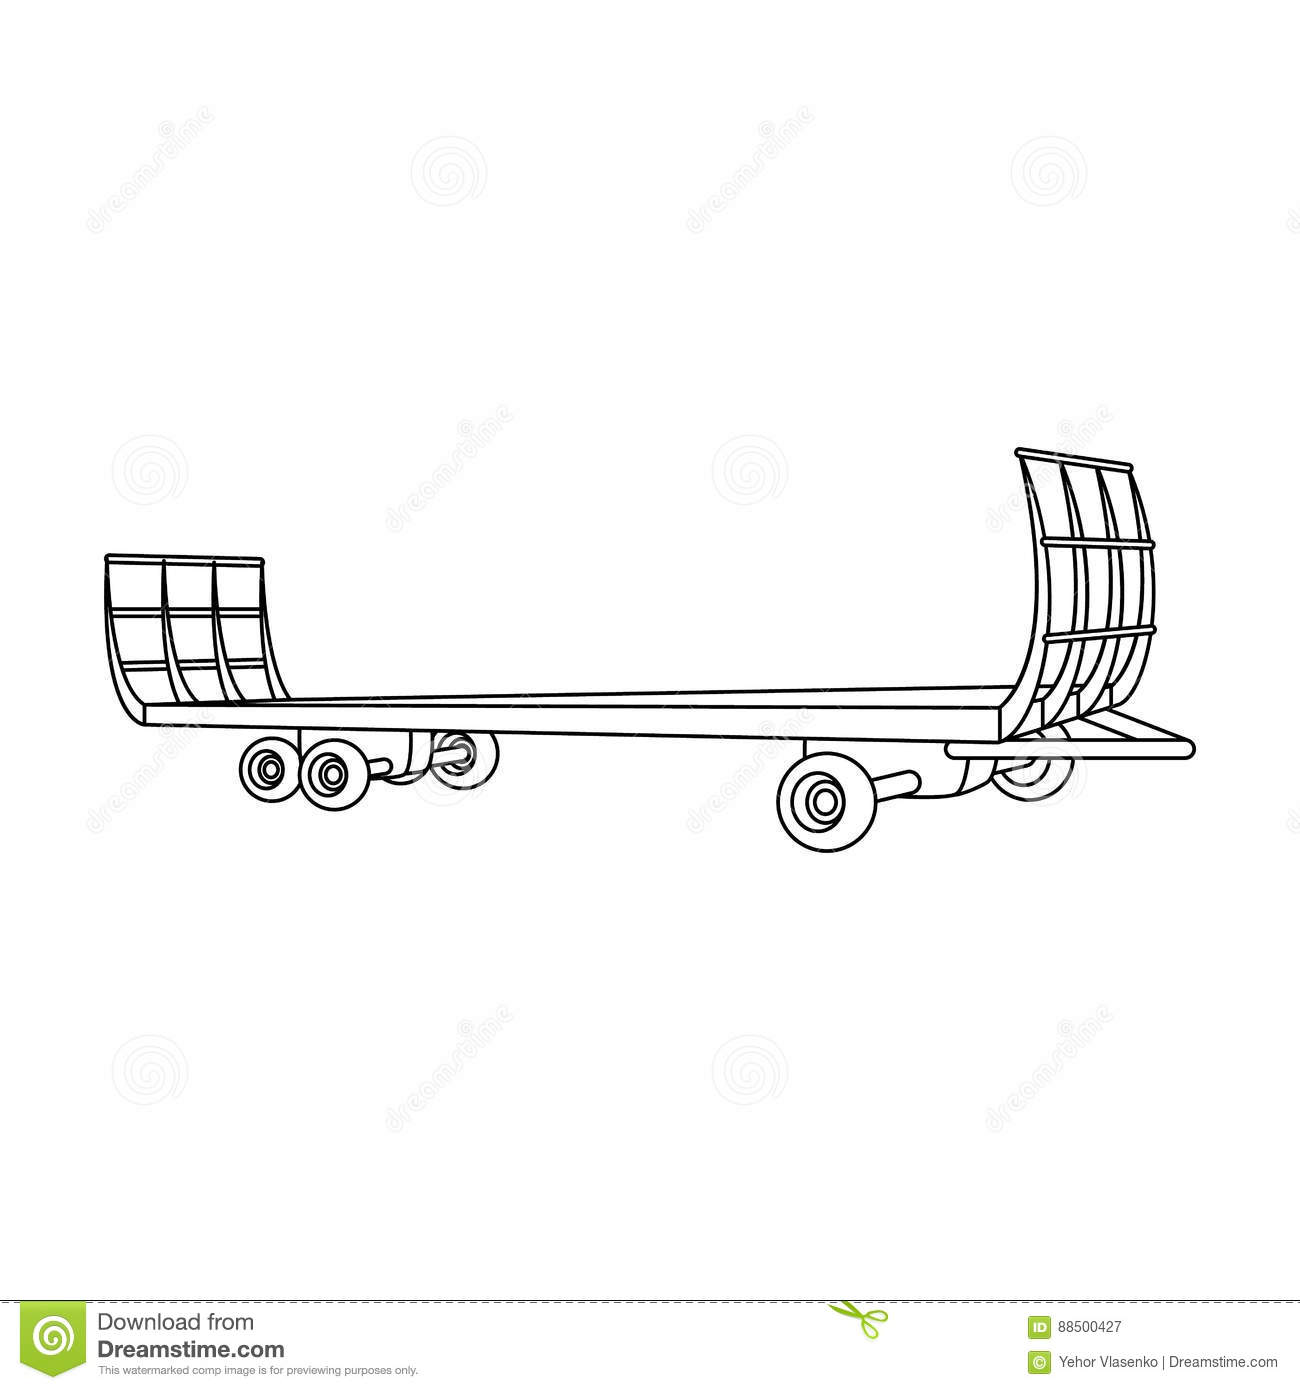 Specialized Trailer On Wheels For Trucks For Transportation Of Hay